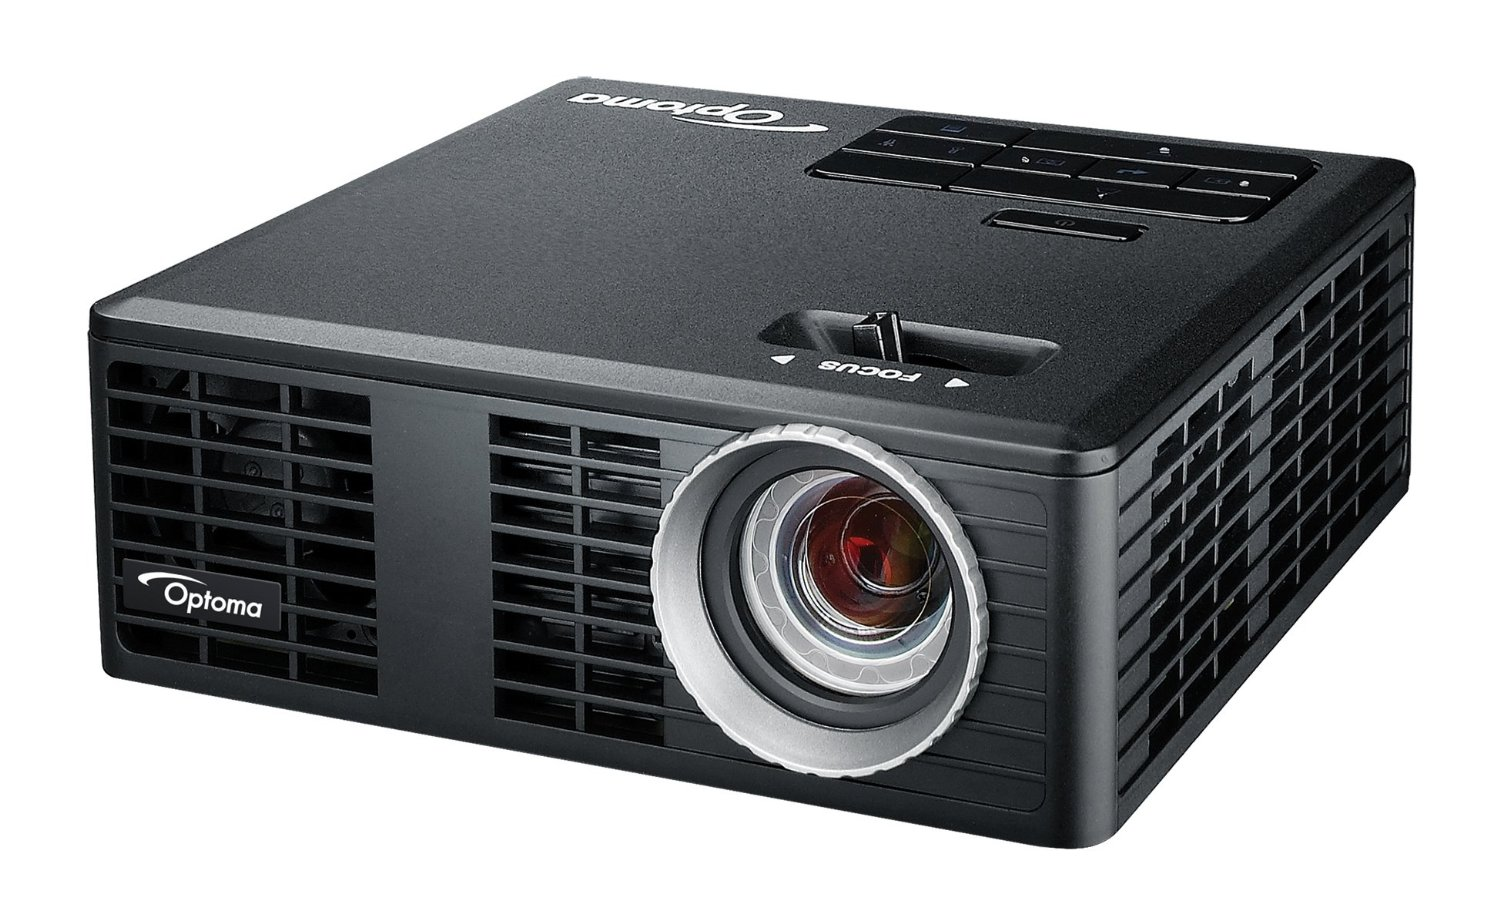 Optoma ML750 WXGA 700 Lumen 3D Ready Portable DLP LED Projector with MHL Enabled HDMI Port: OPTOMA DLP